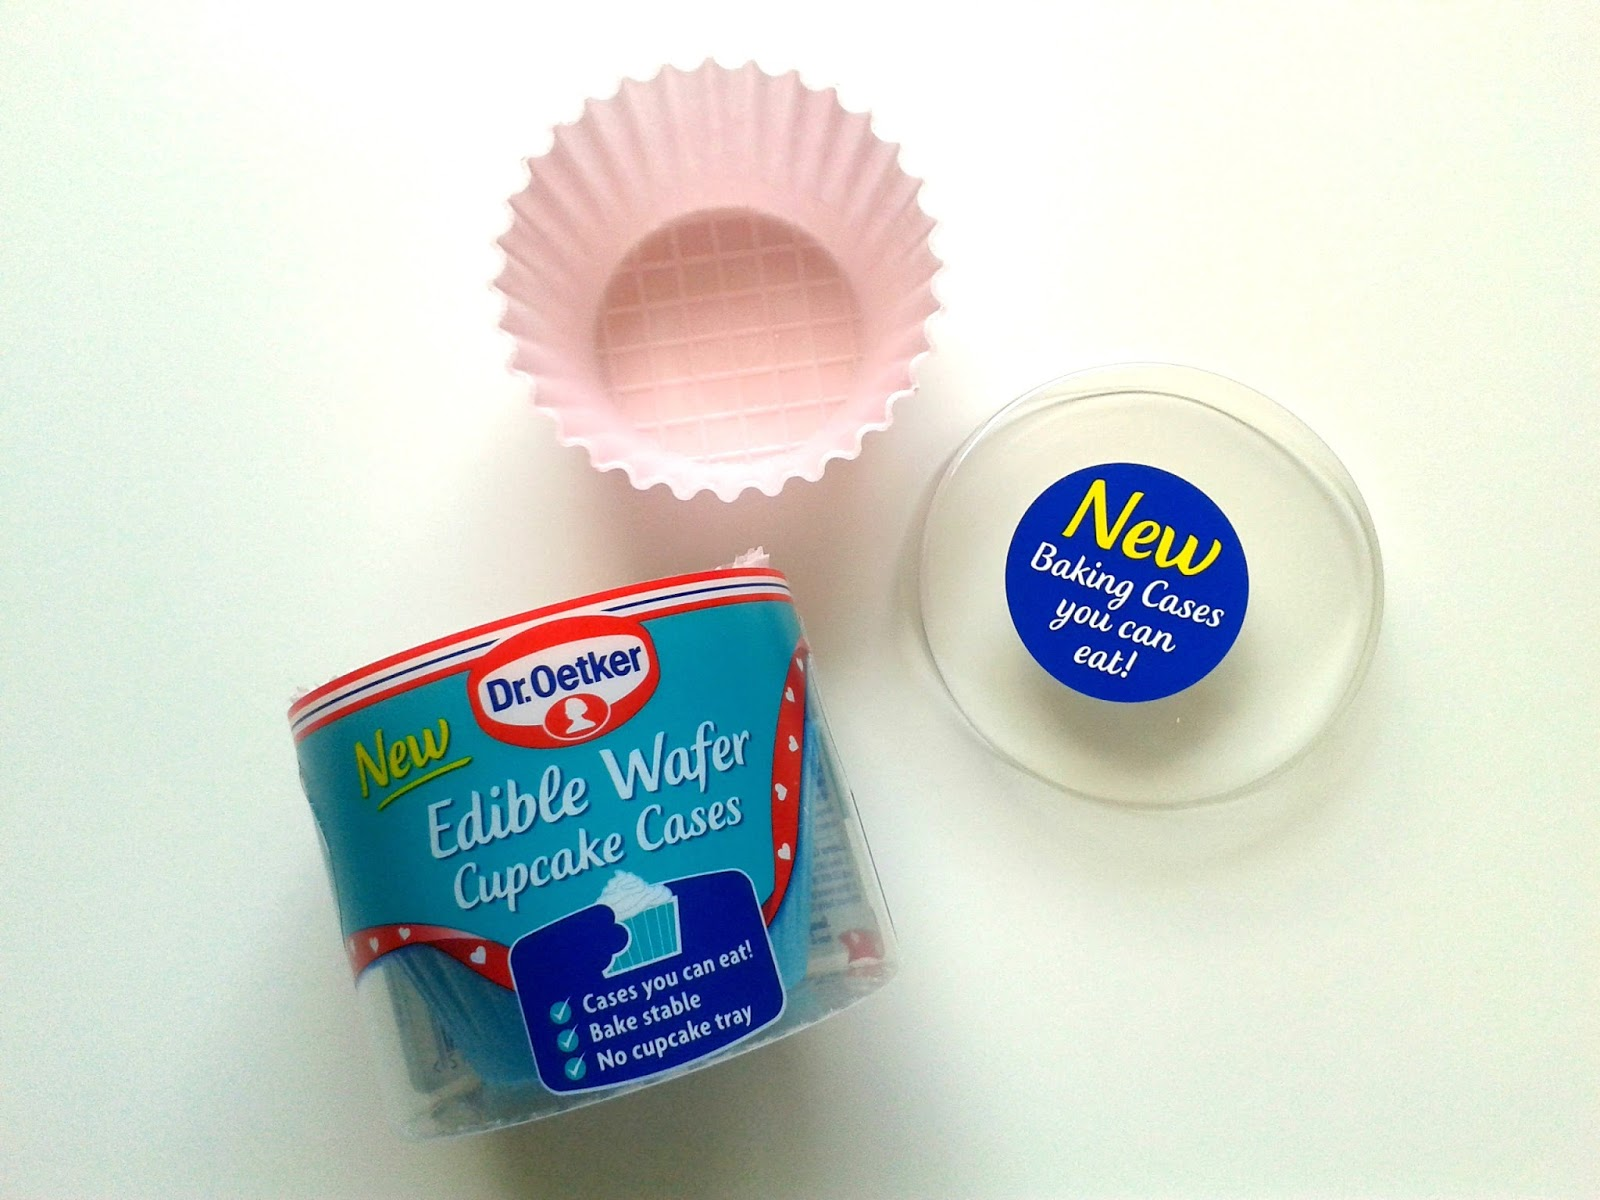 Dr. Oetker Edible Wafer Cupcake Cases August Degustabox Review